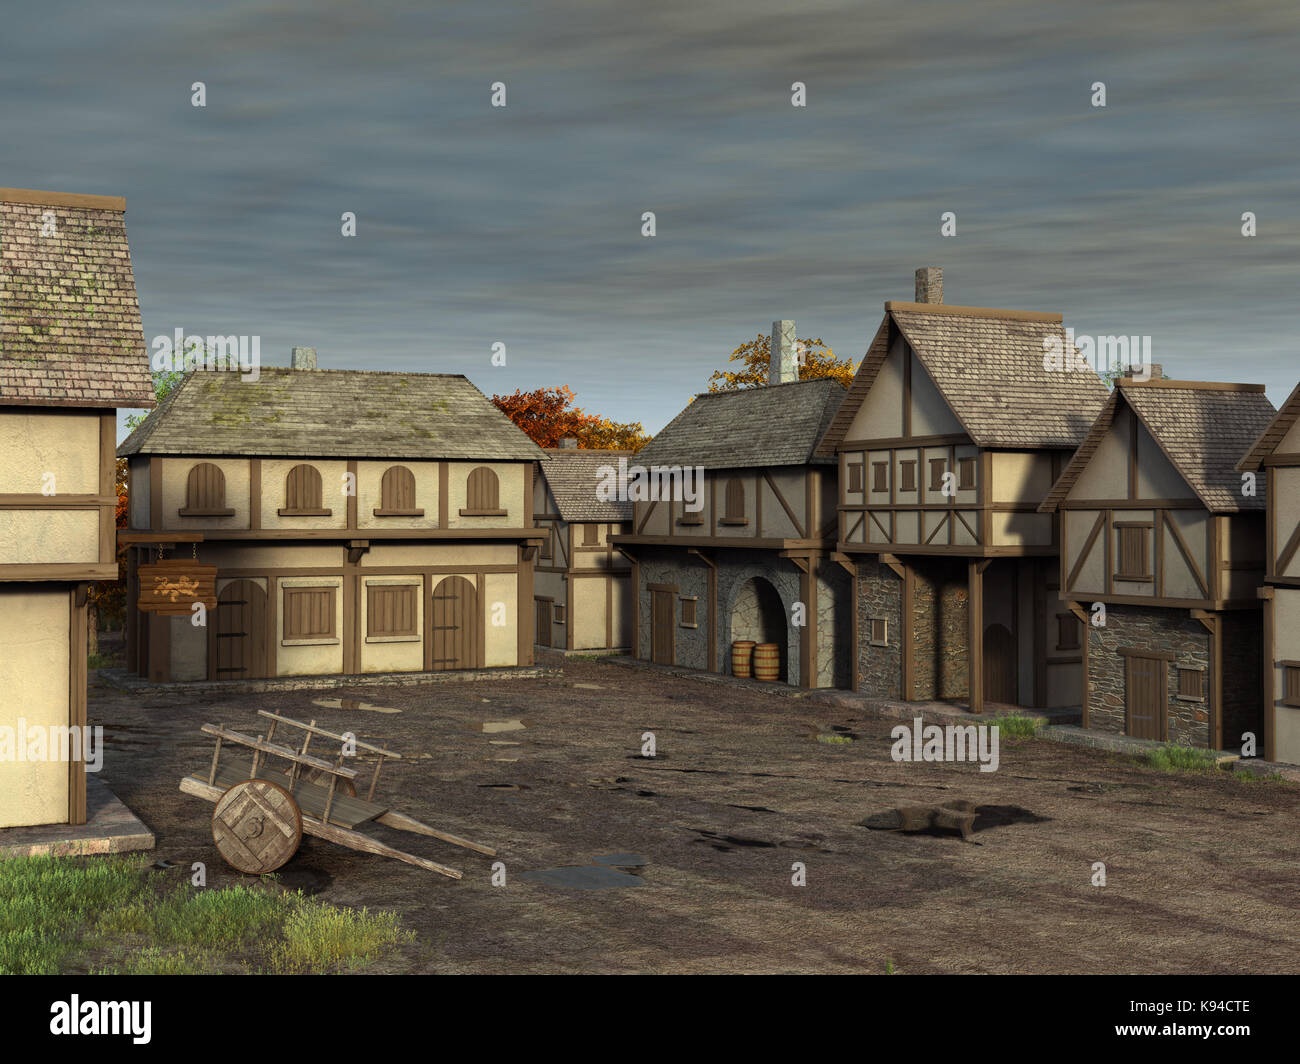 Medieval village - Stock Image